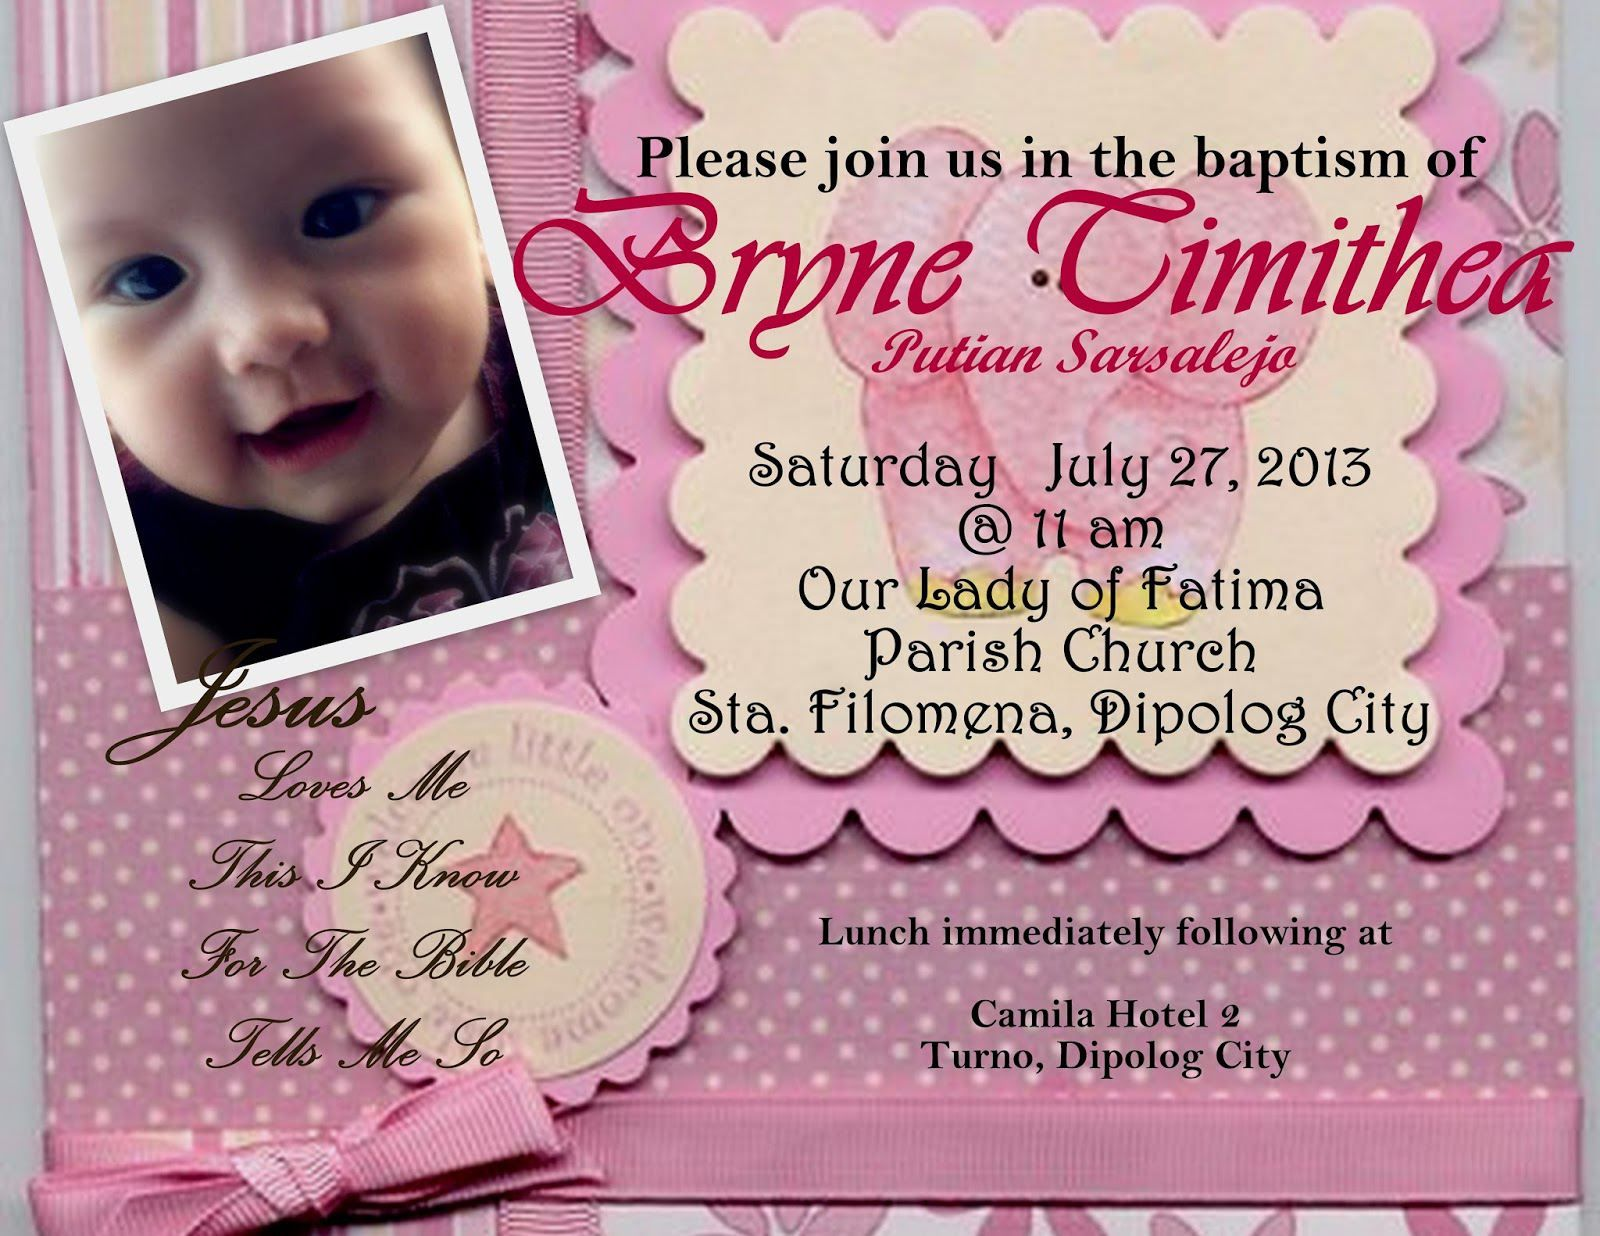 Invitation Card For Christening Invitation Card For Christening - 21st birthday invitation card background